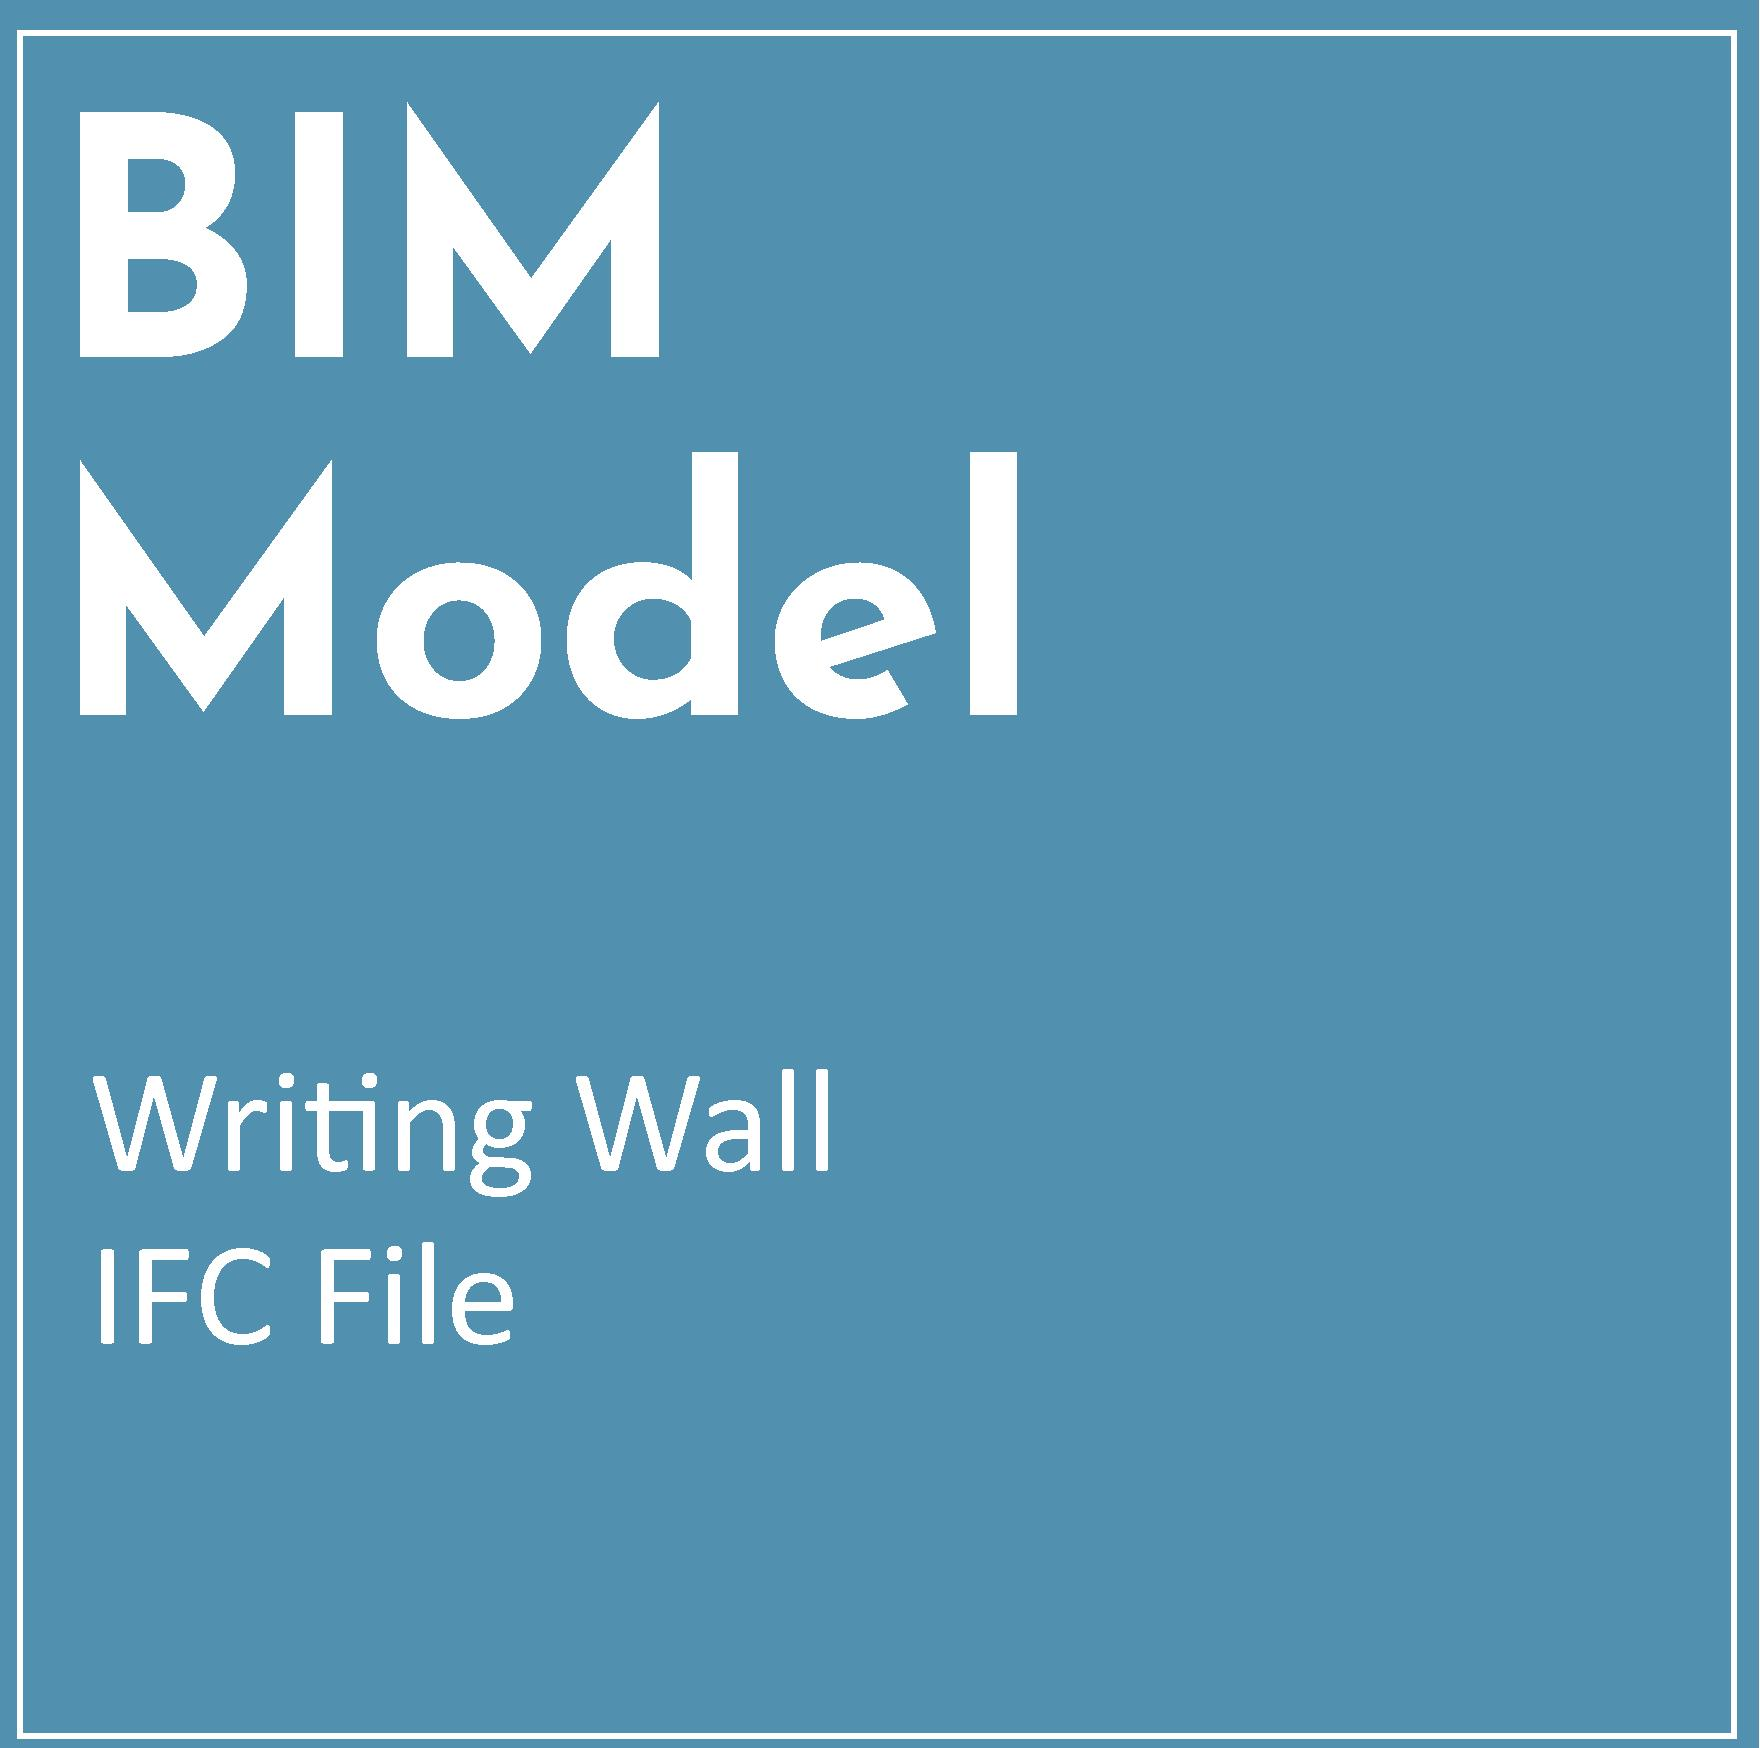 IFC BIM Model – Writing Wall